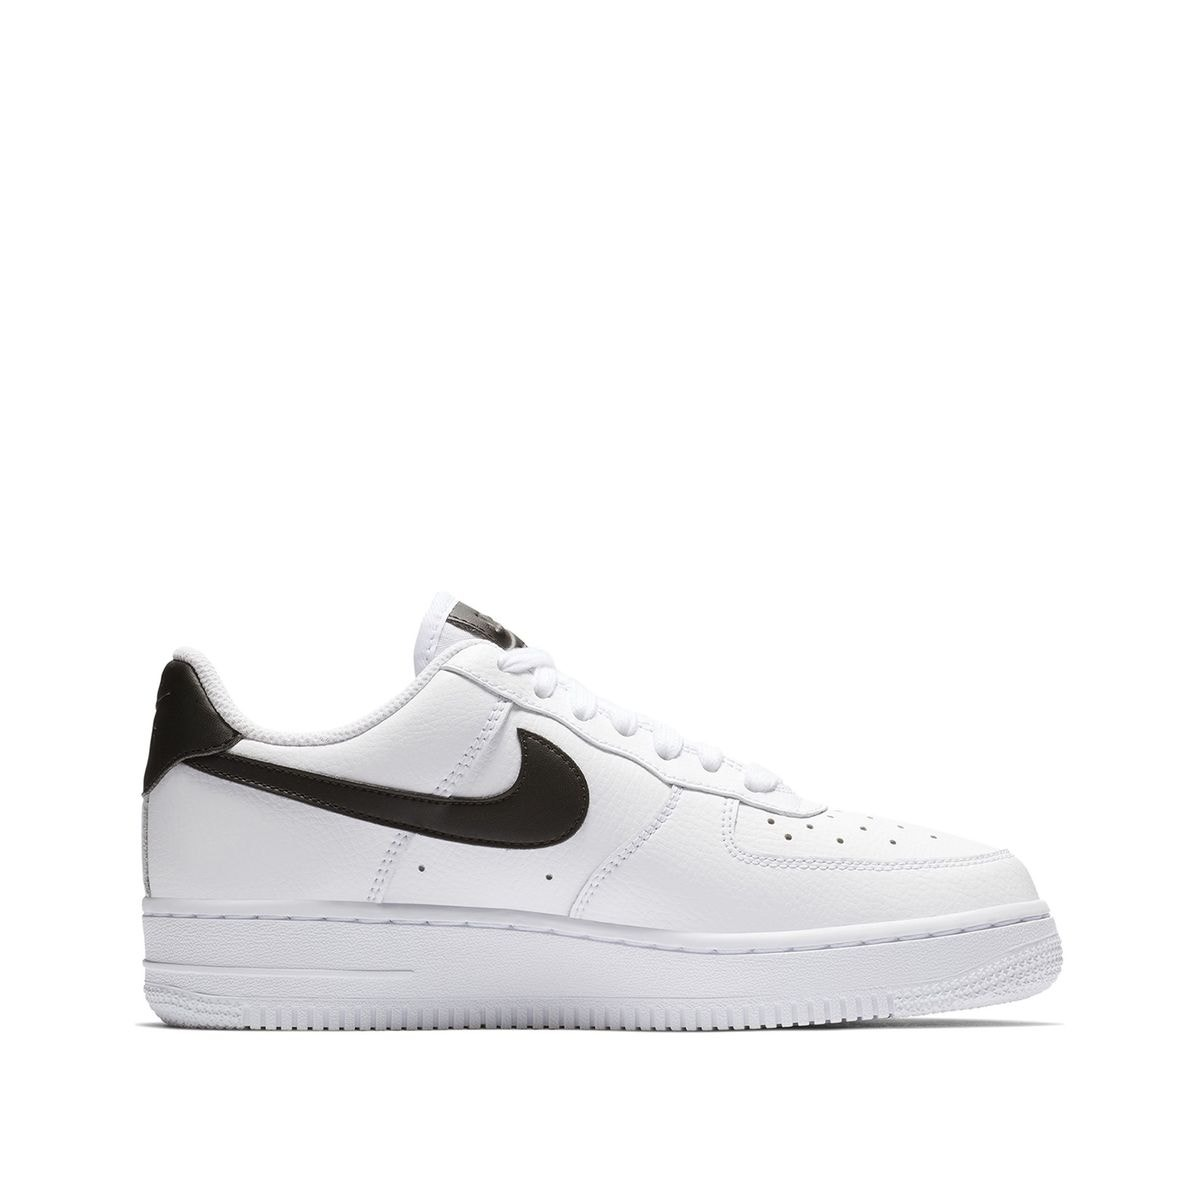 Air force one blanche | La Redoute